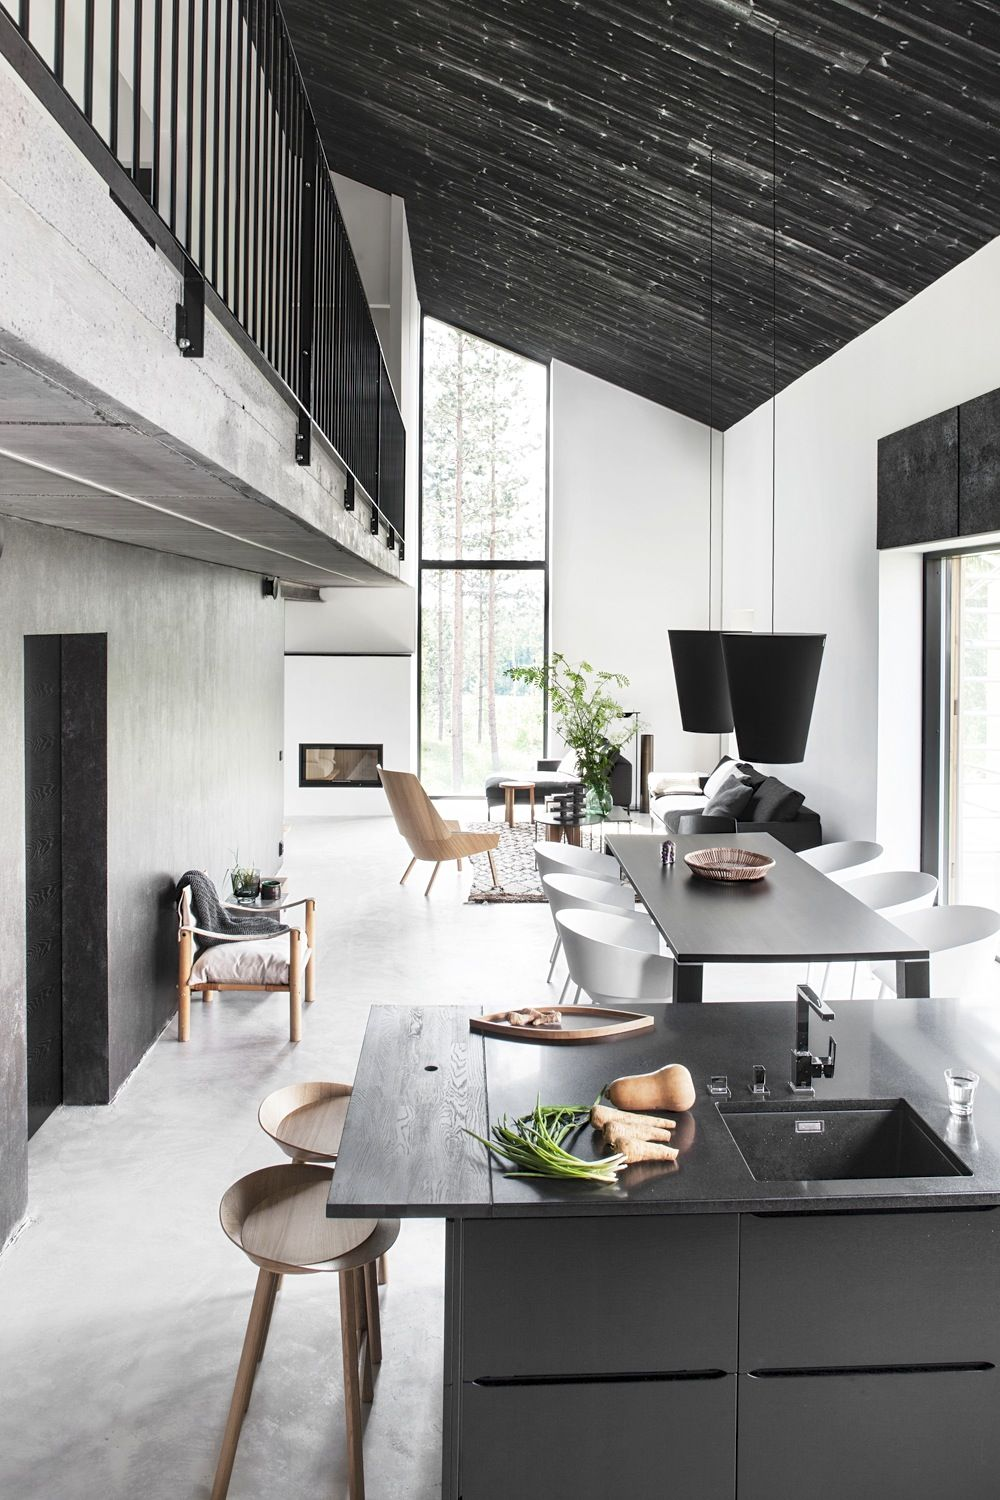 Home Design Open Floor Plan Narrow House Living Room Dining Kitchen Black Ceiling Loft Second Two Story Cool Minimalist D